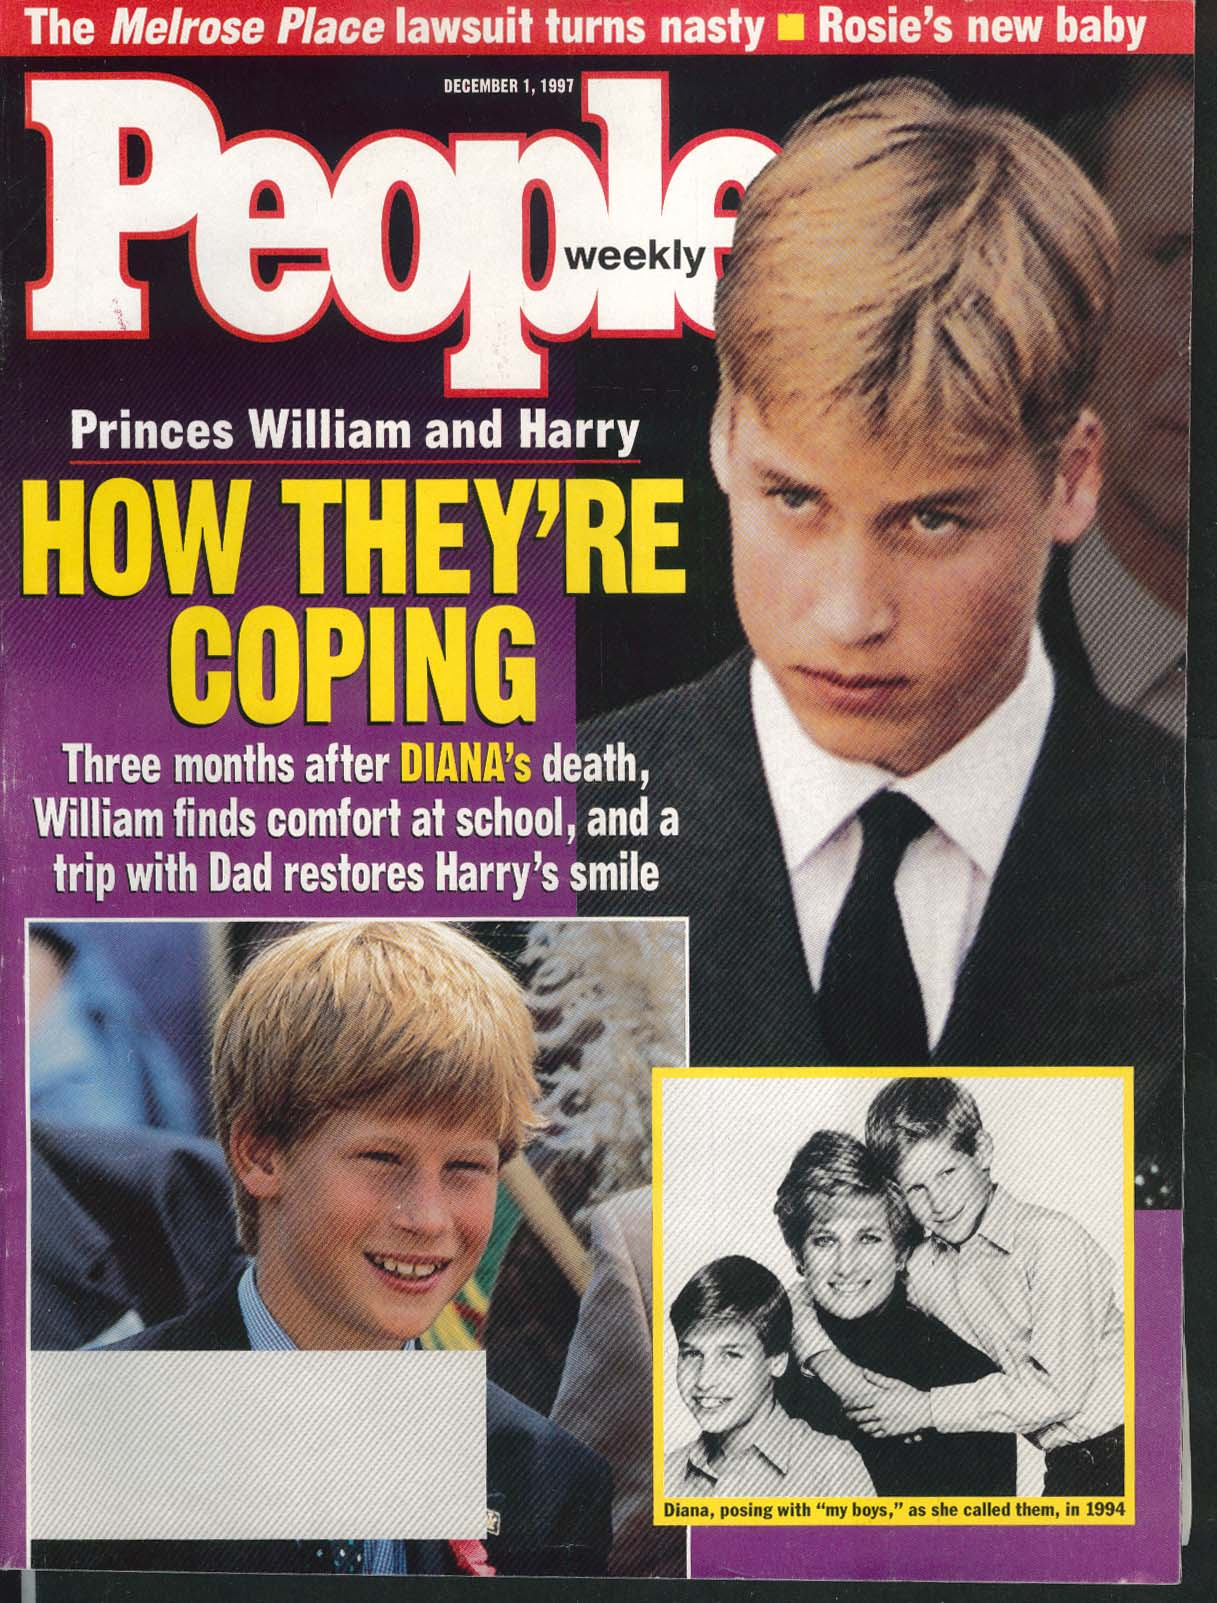 PEOPLE Prince William Harry Diana Melrose Place Rosie O'Donnell 12/1 1997